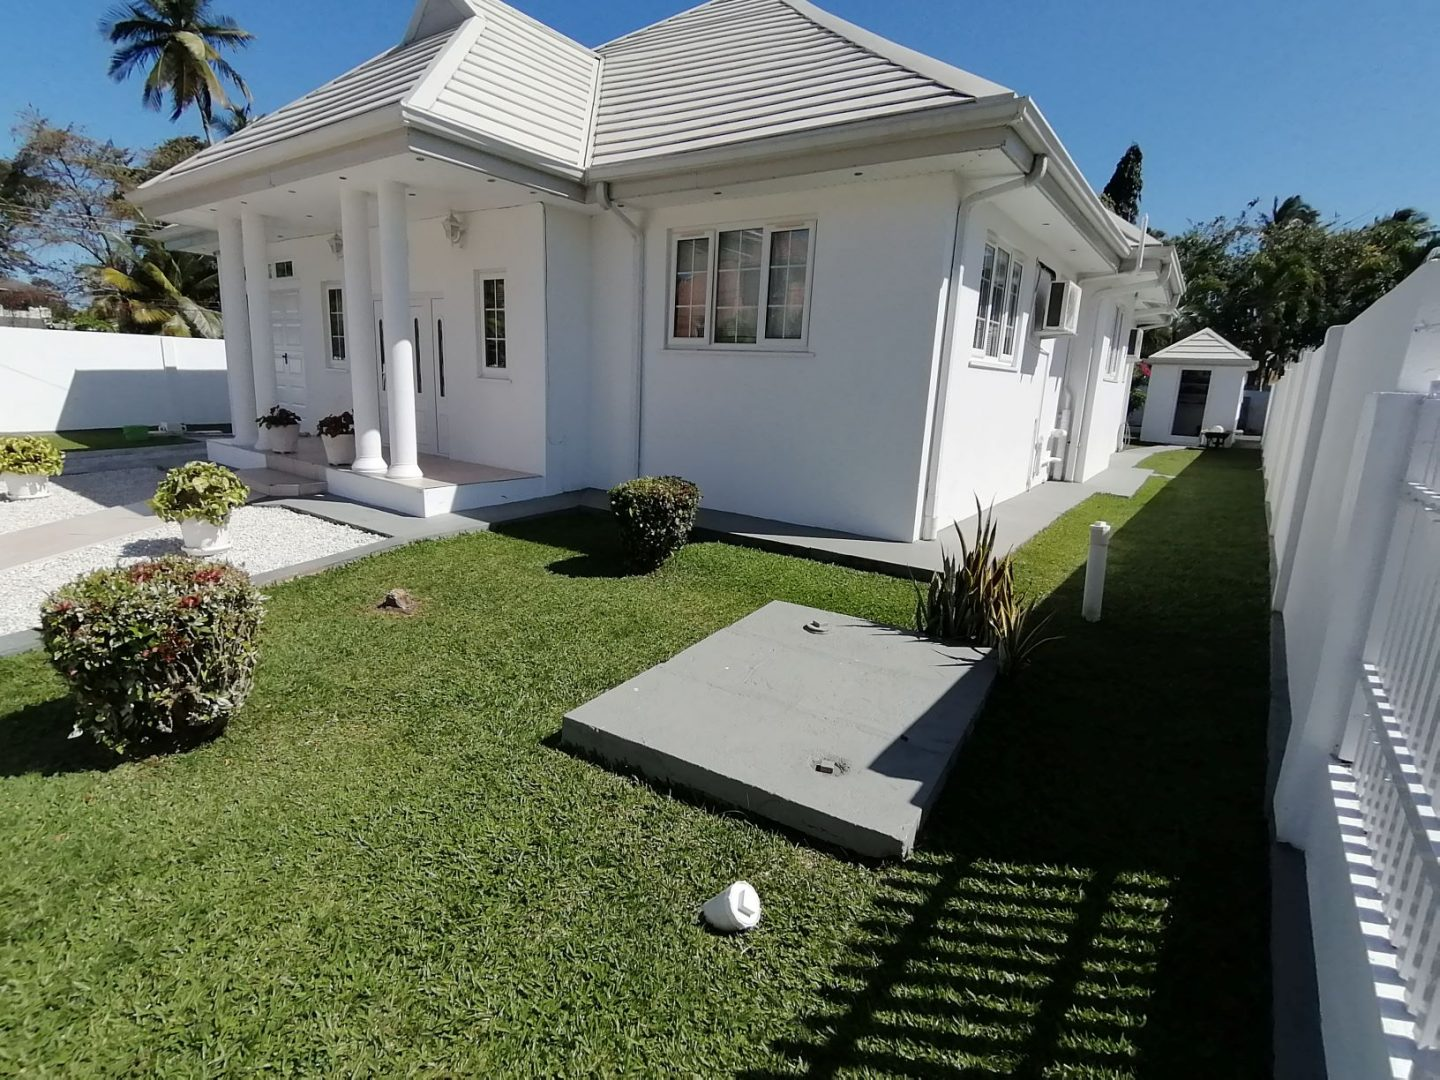 SUPERB HOME FOR SALE AT BON ACCORD PHASE 3, TOBAGO